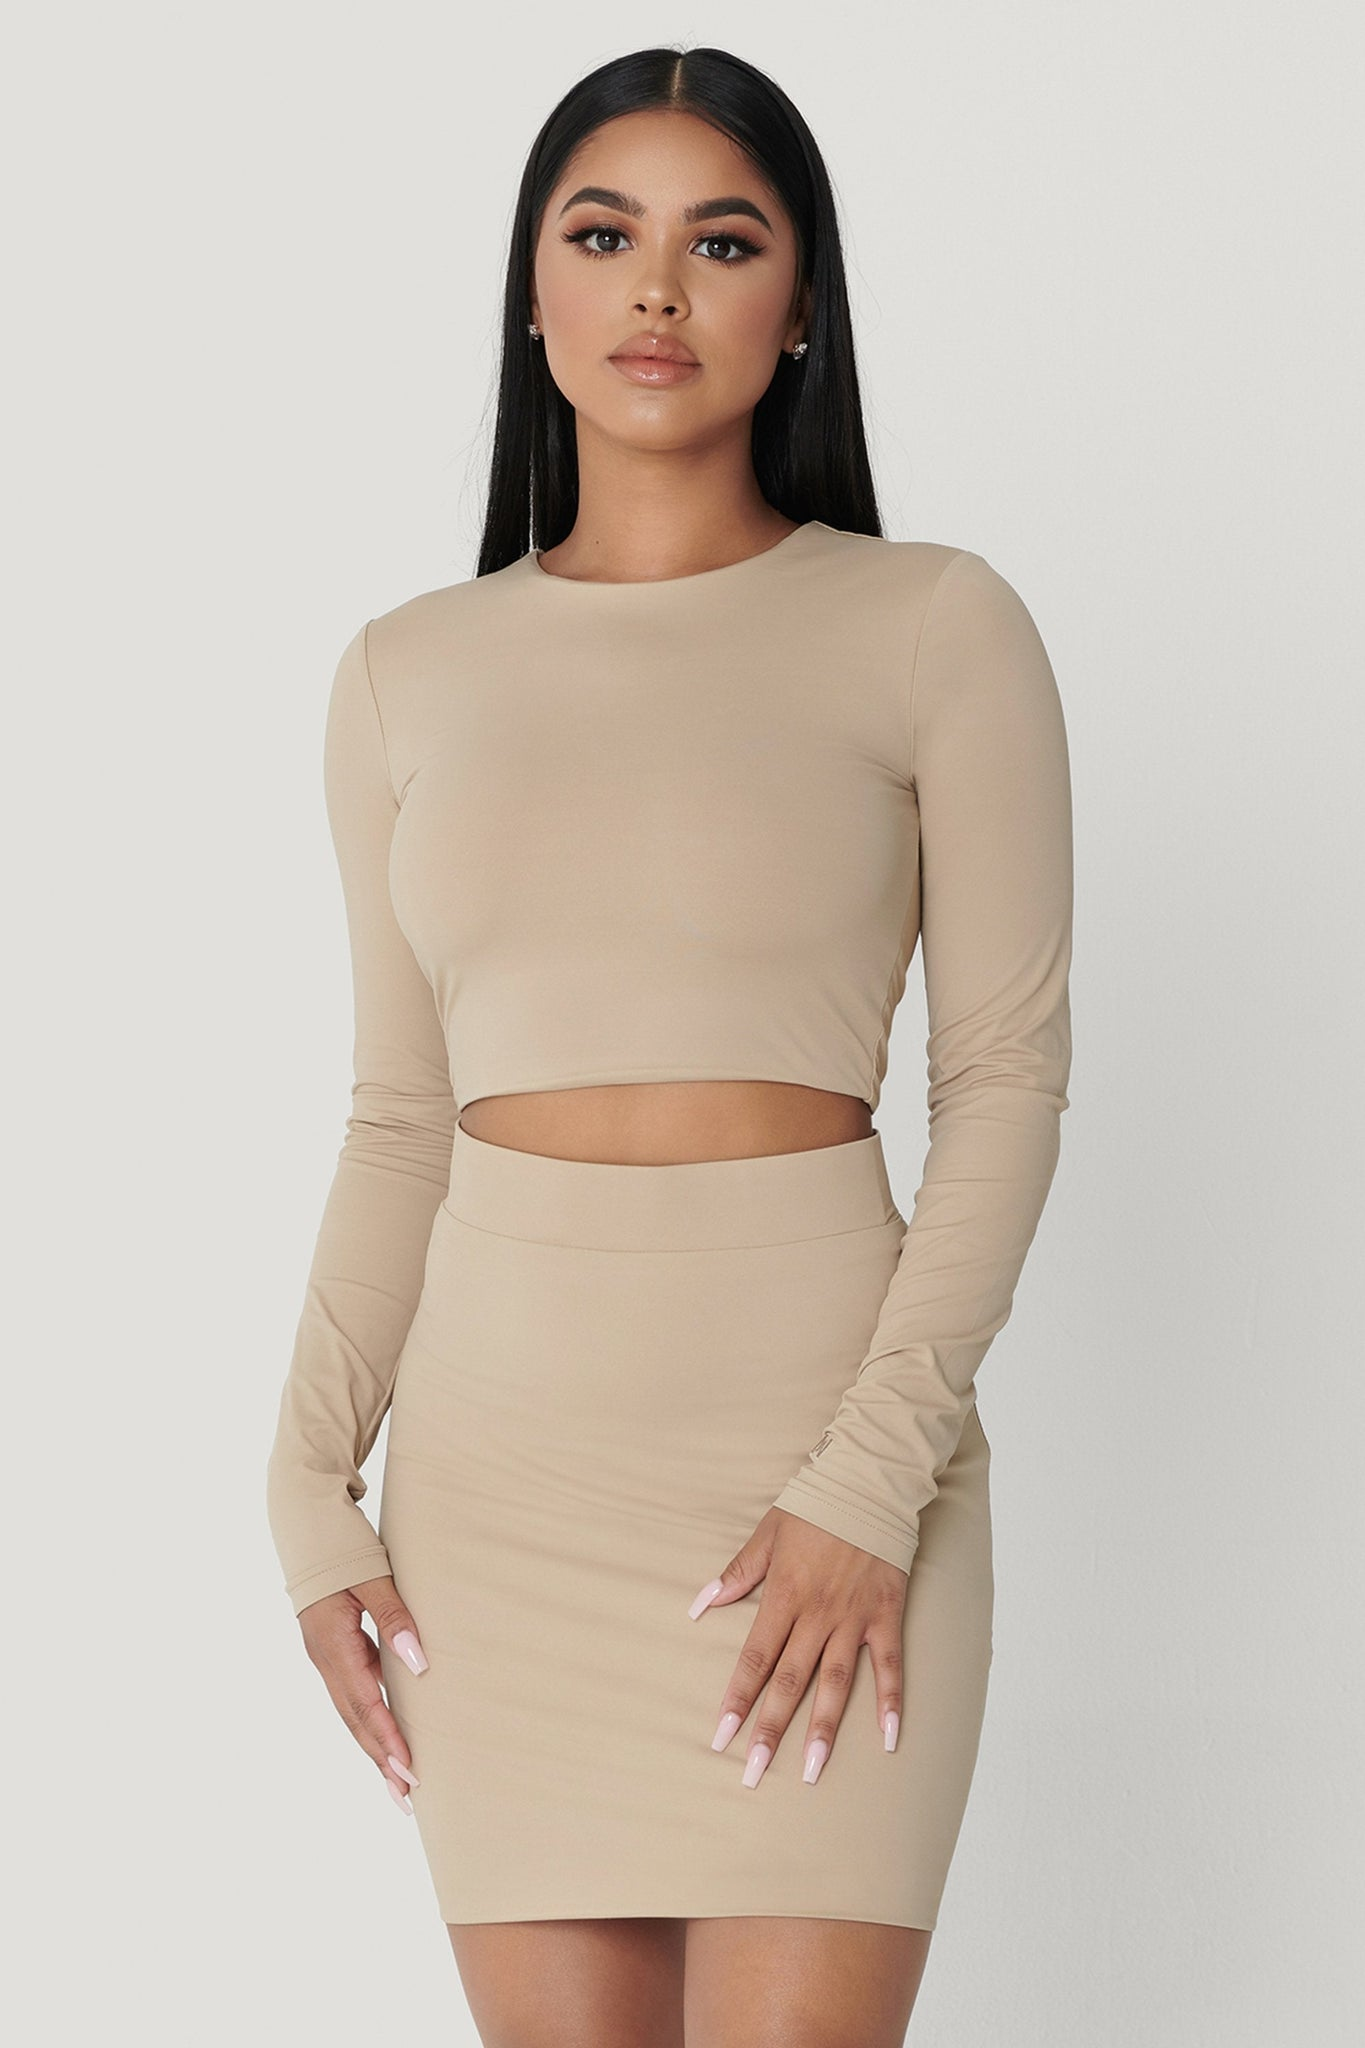 Emely Long Sleeve Crop Top  - Almond - MESHKI